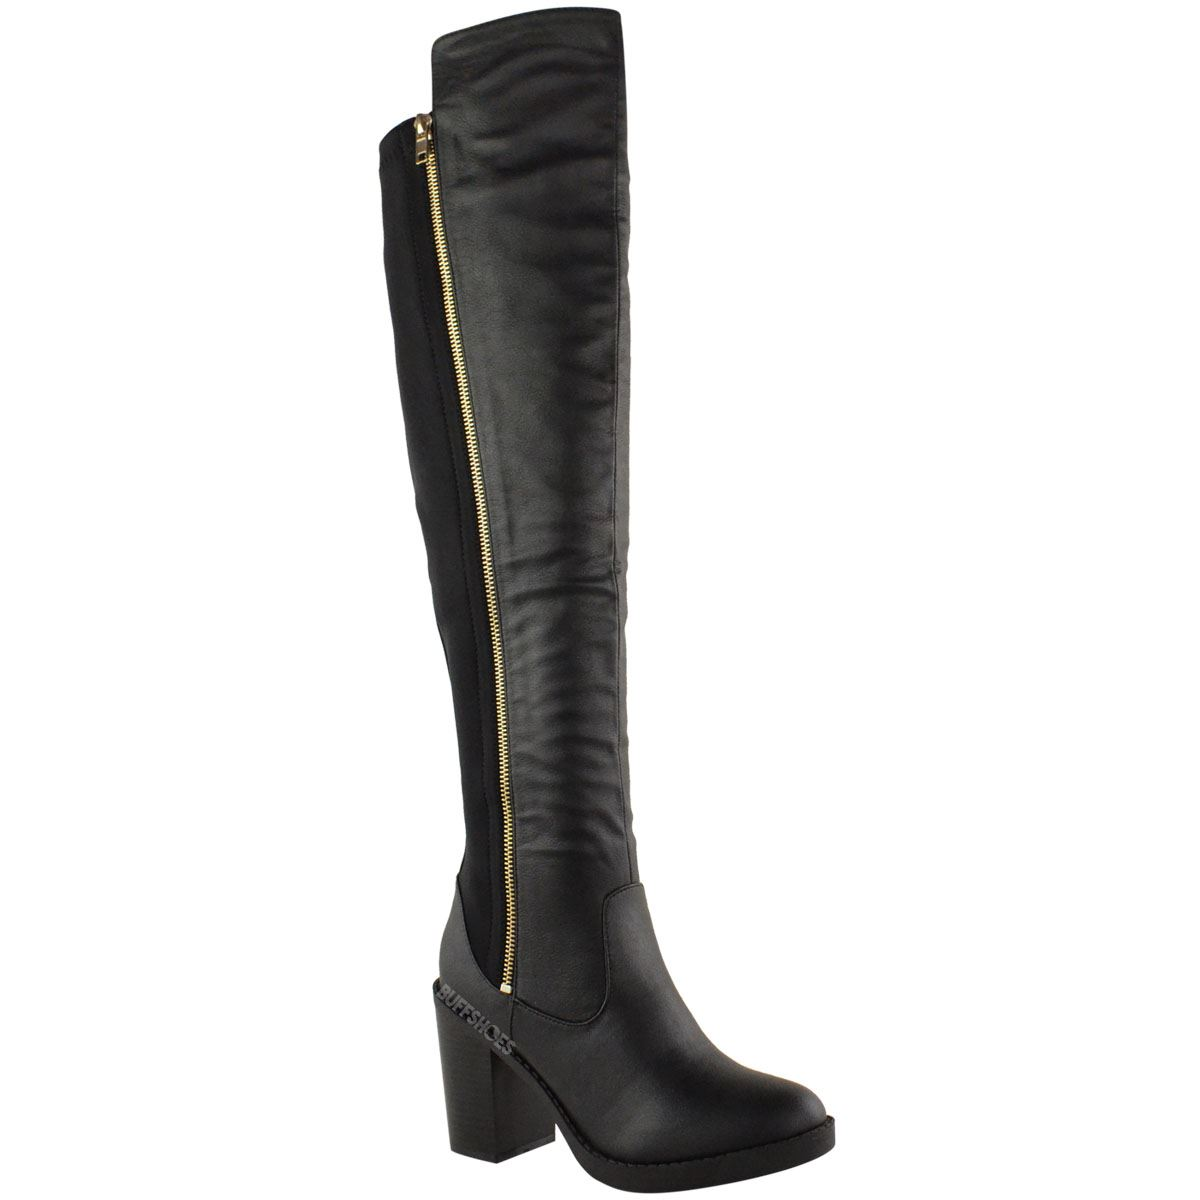 WOMENS LADIES CHUNKY HEEL OVER THE KNEE THIGH HIGH WINTER